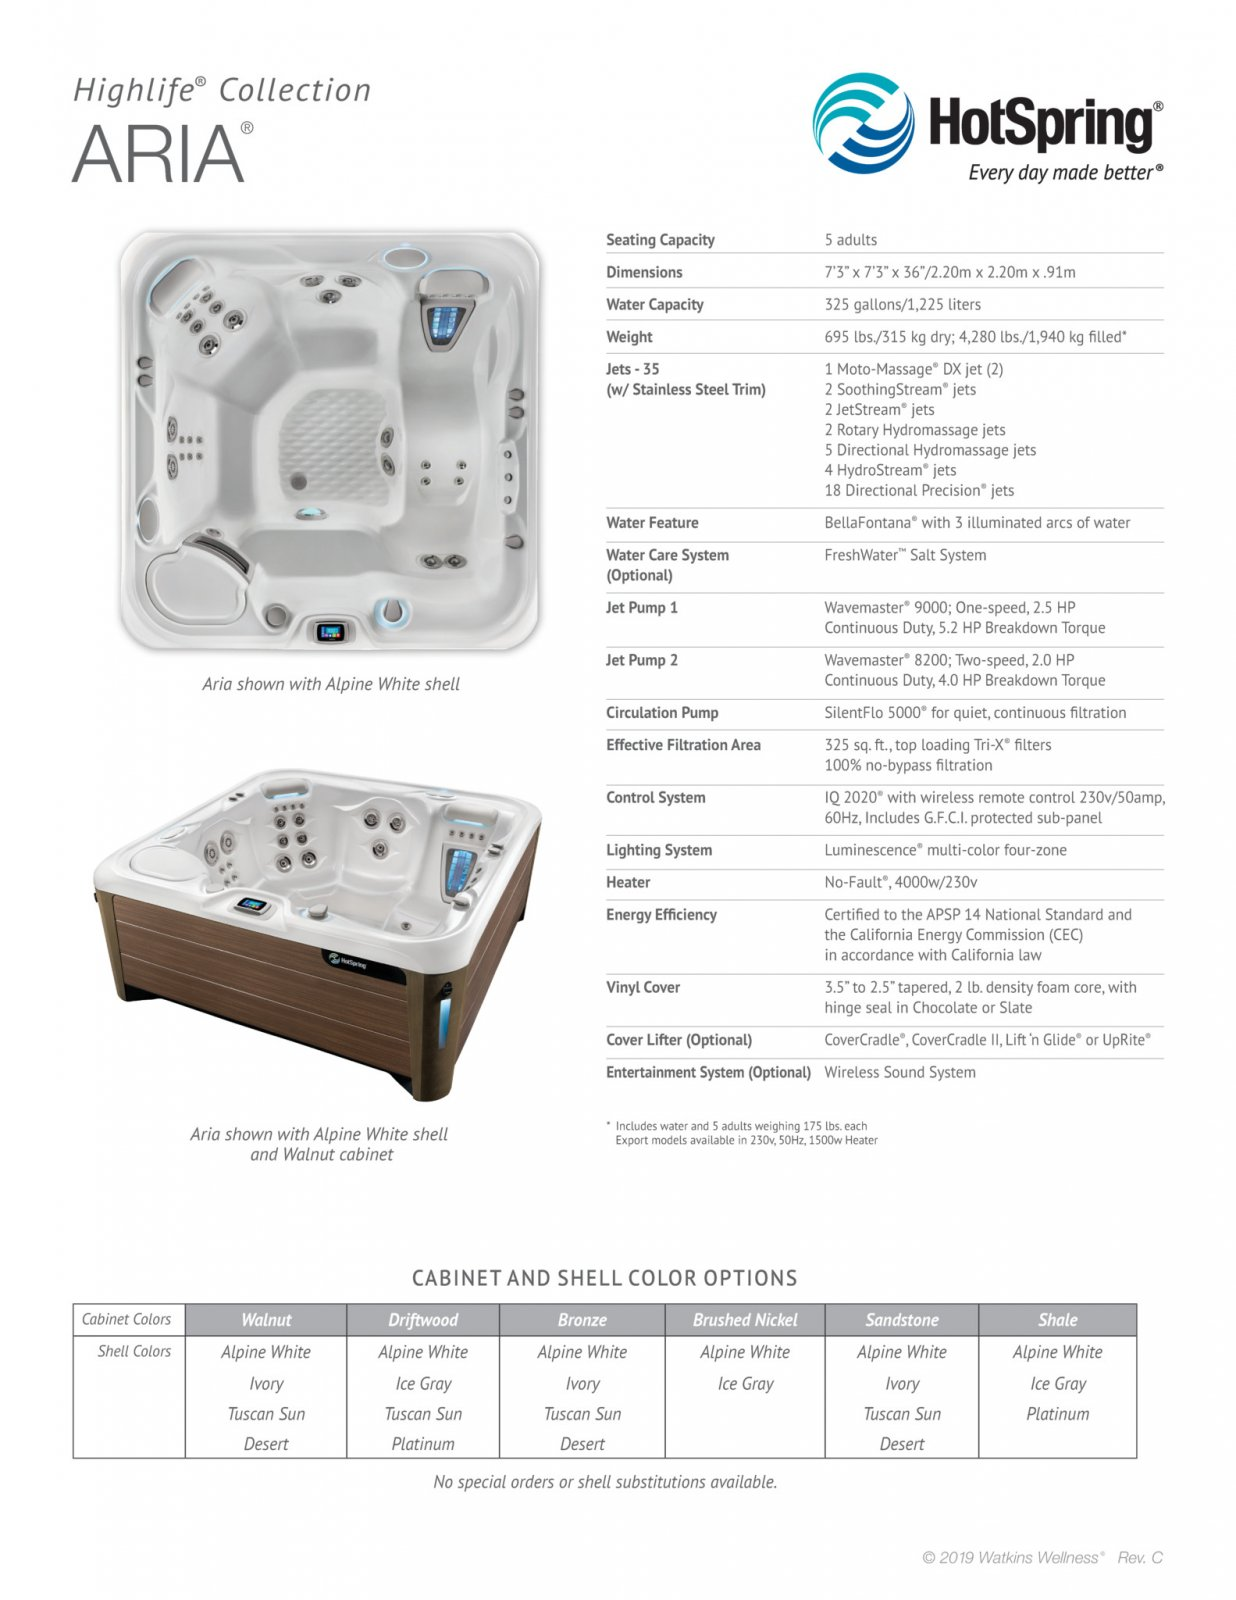 HotSpring Highlife Aria spa specs